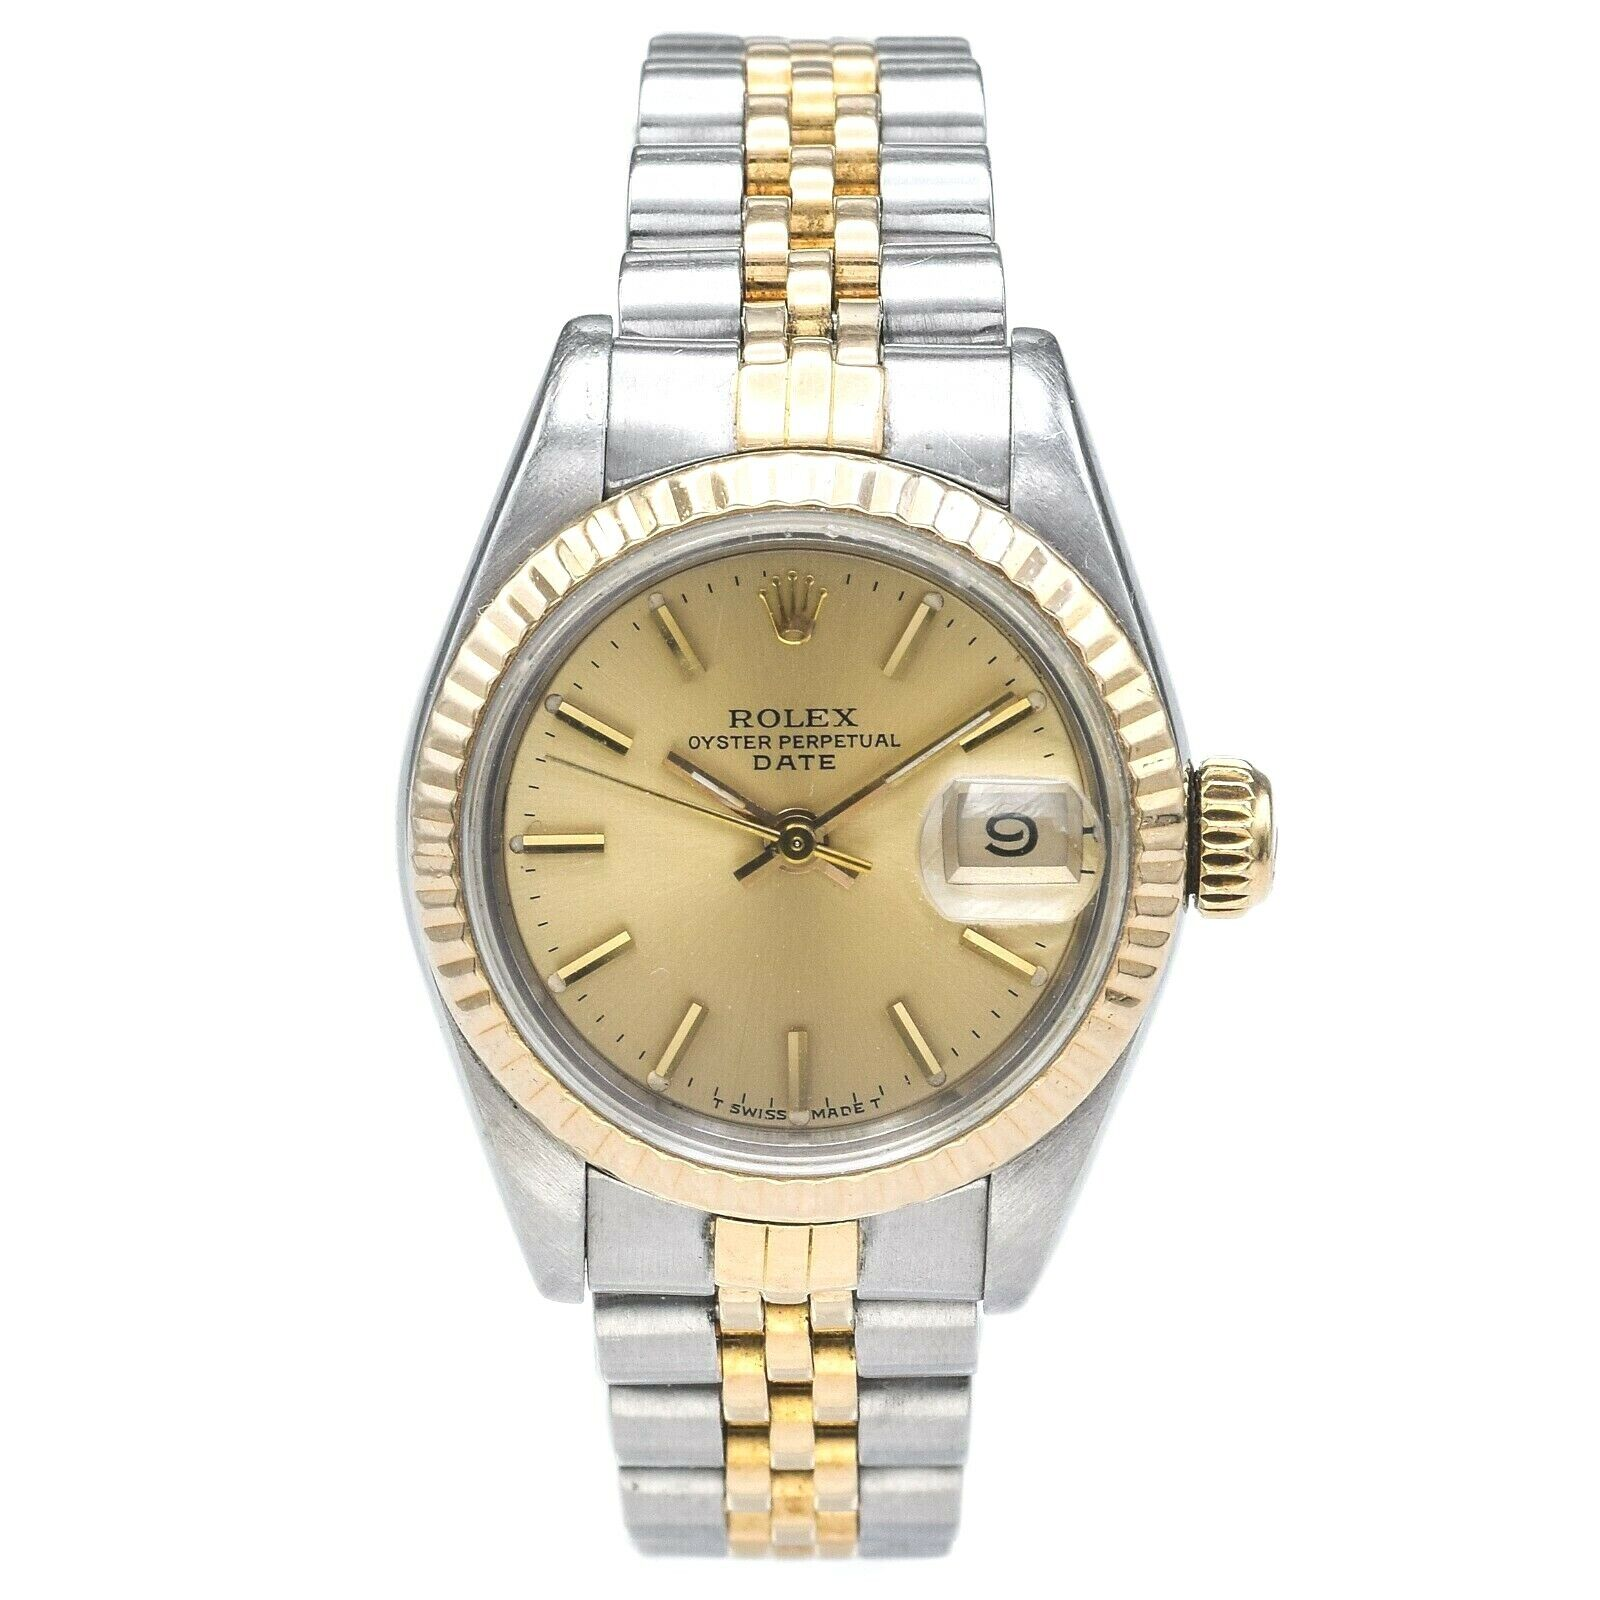 Vintage Rolex Lady Date Two Tone S/S 18K Gold Women's Watch Ref 69173 Cal 2130